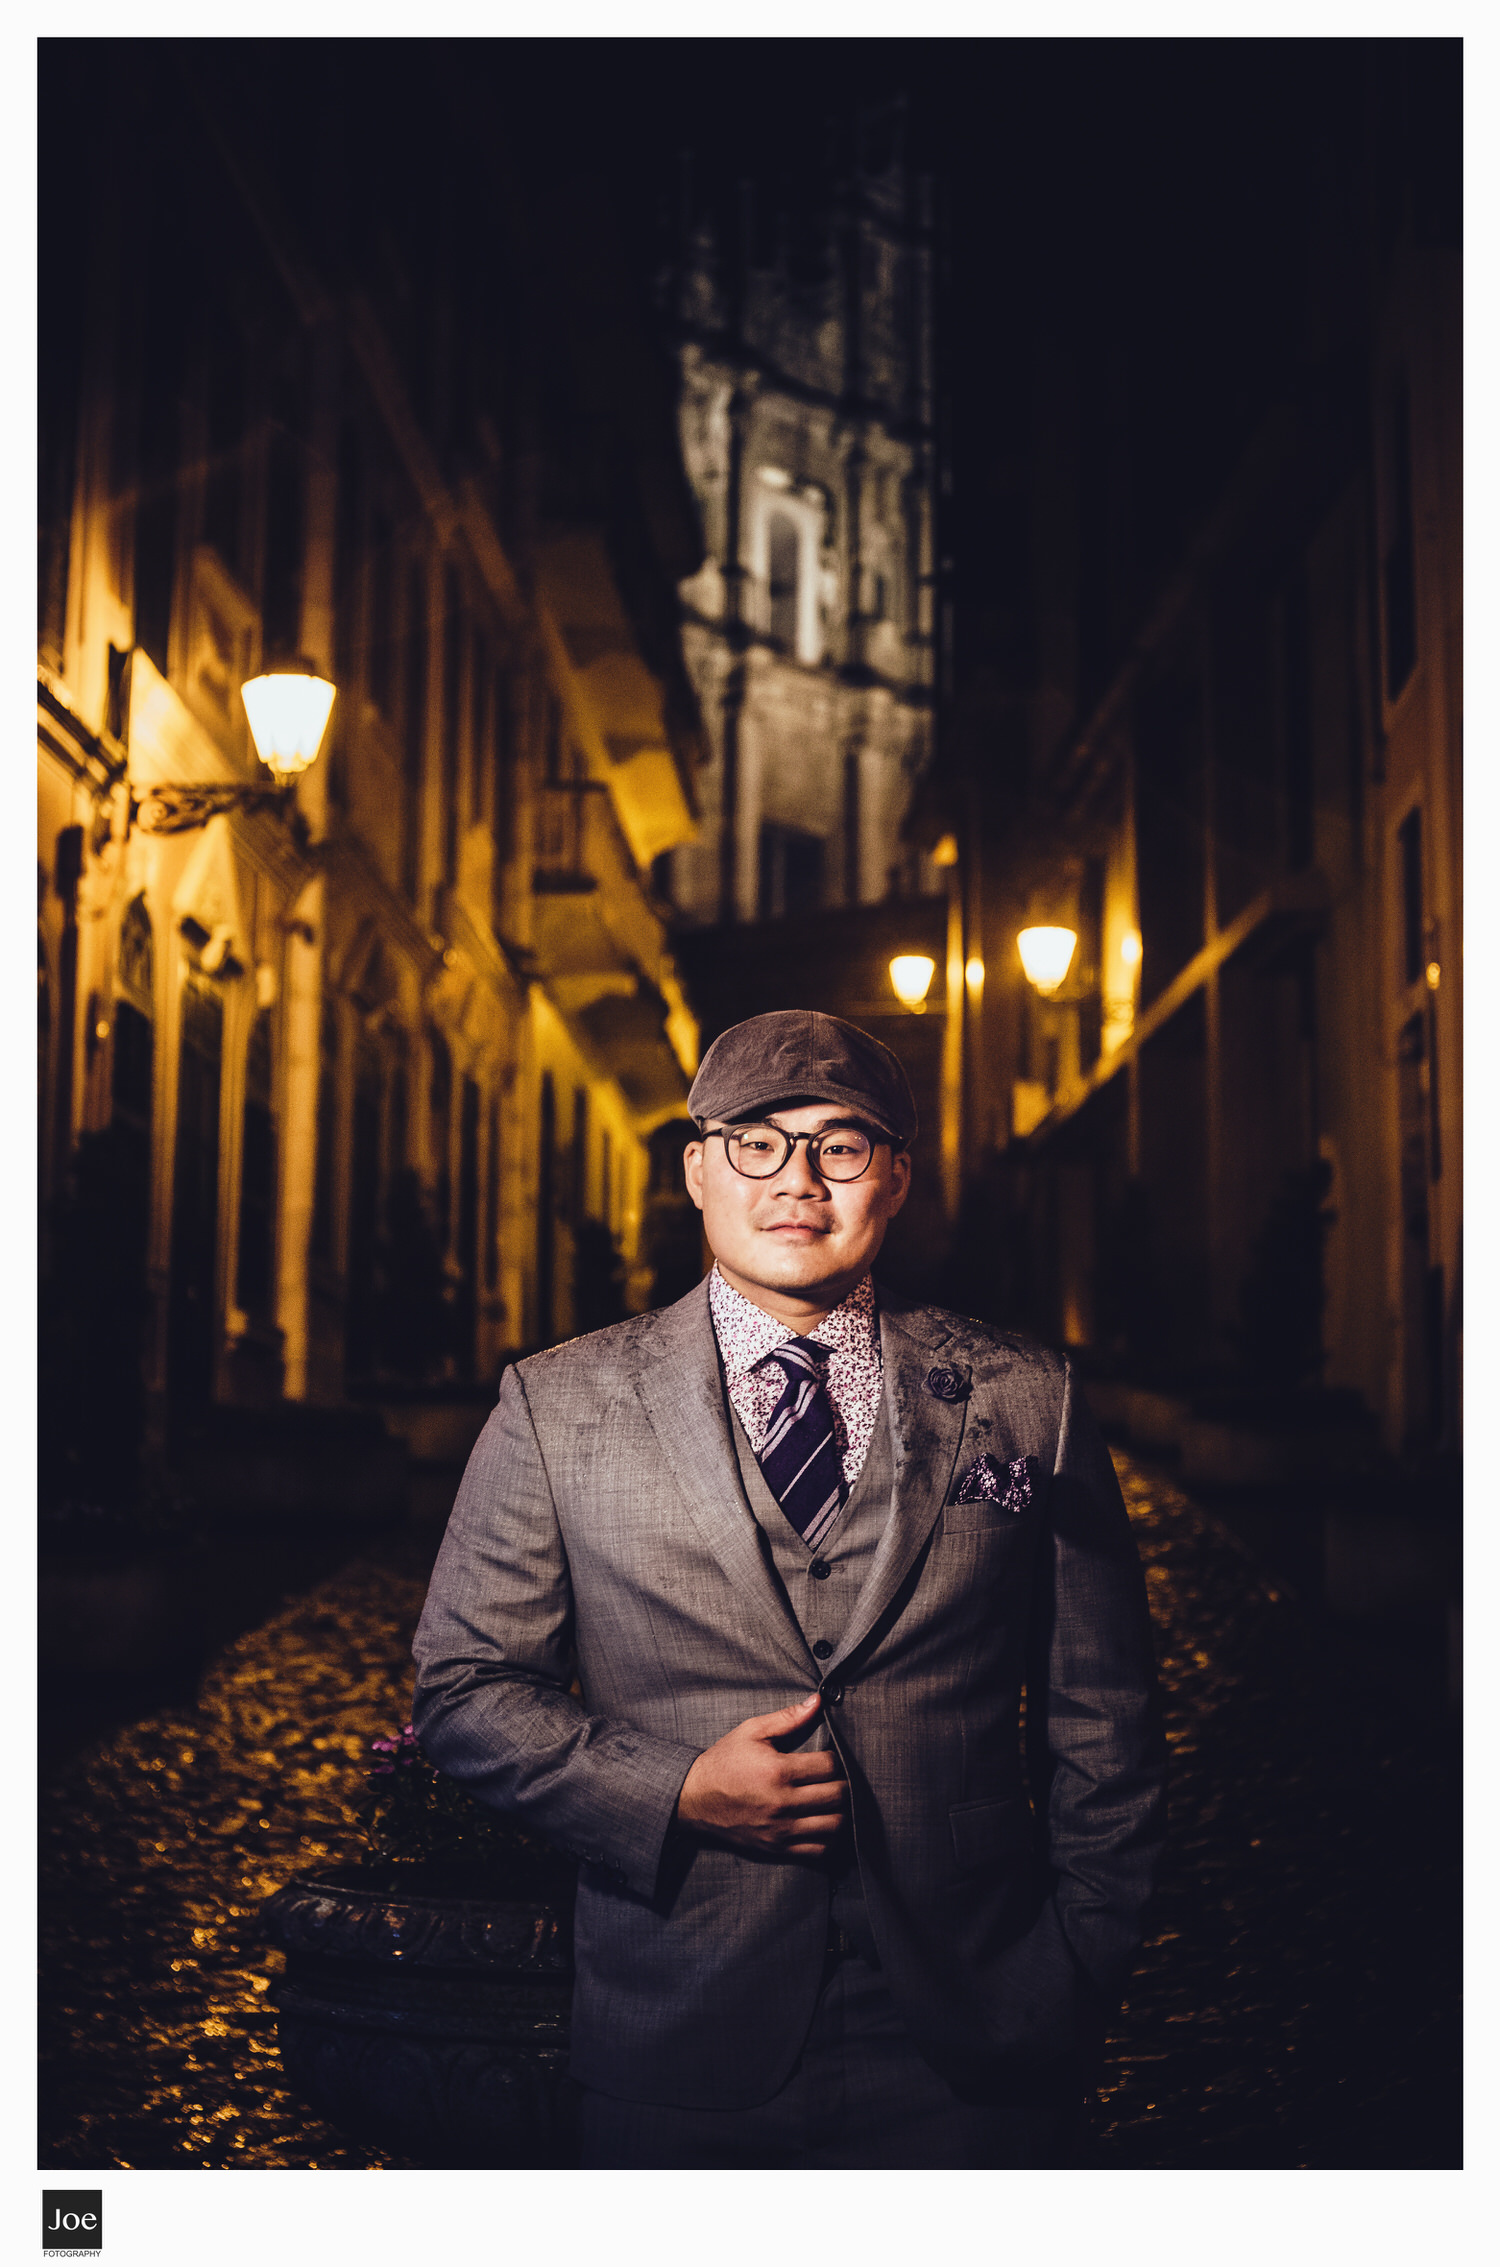 095-travessa-da-paixao-macau-pre-wedding-jie-min-joe-fotography.jpg